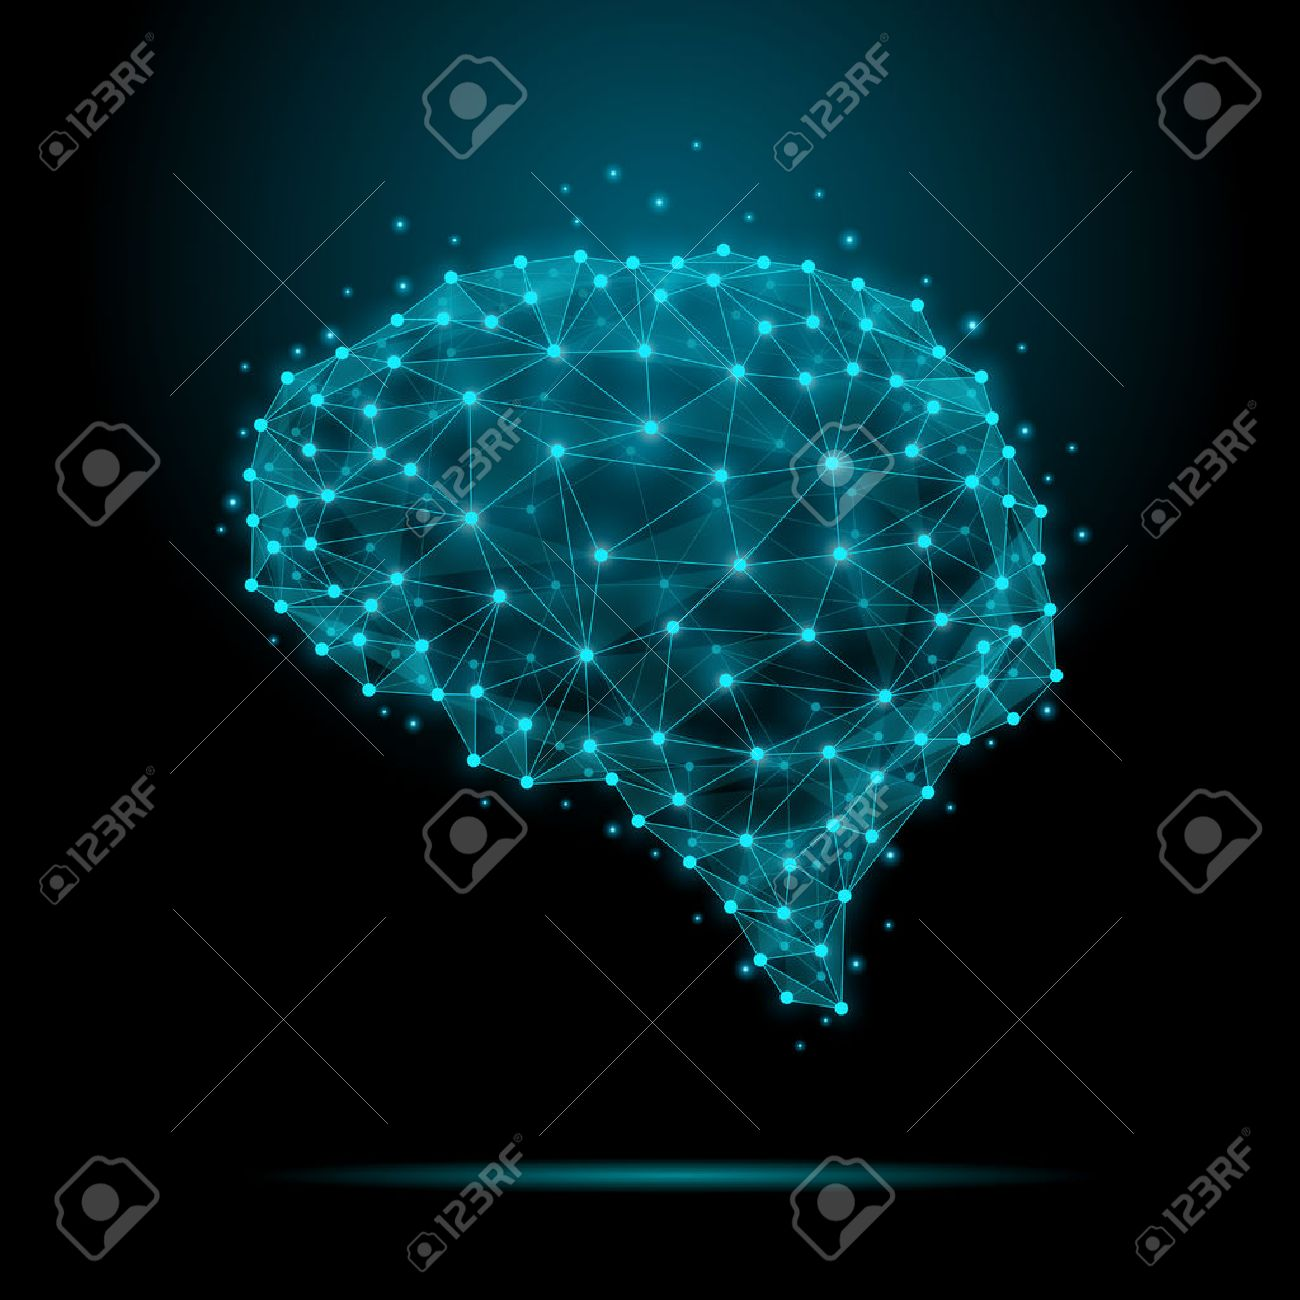 Polygonal human brain. The concept consists of polygons with luminous nodes at the intersections of the ribs. Vector illustration - 48211469